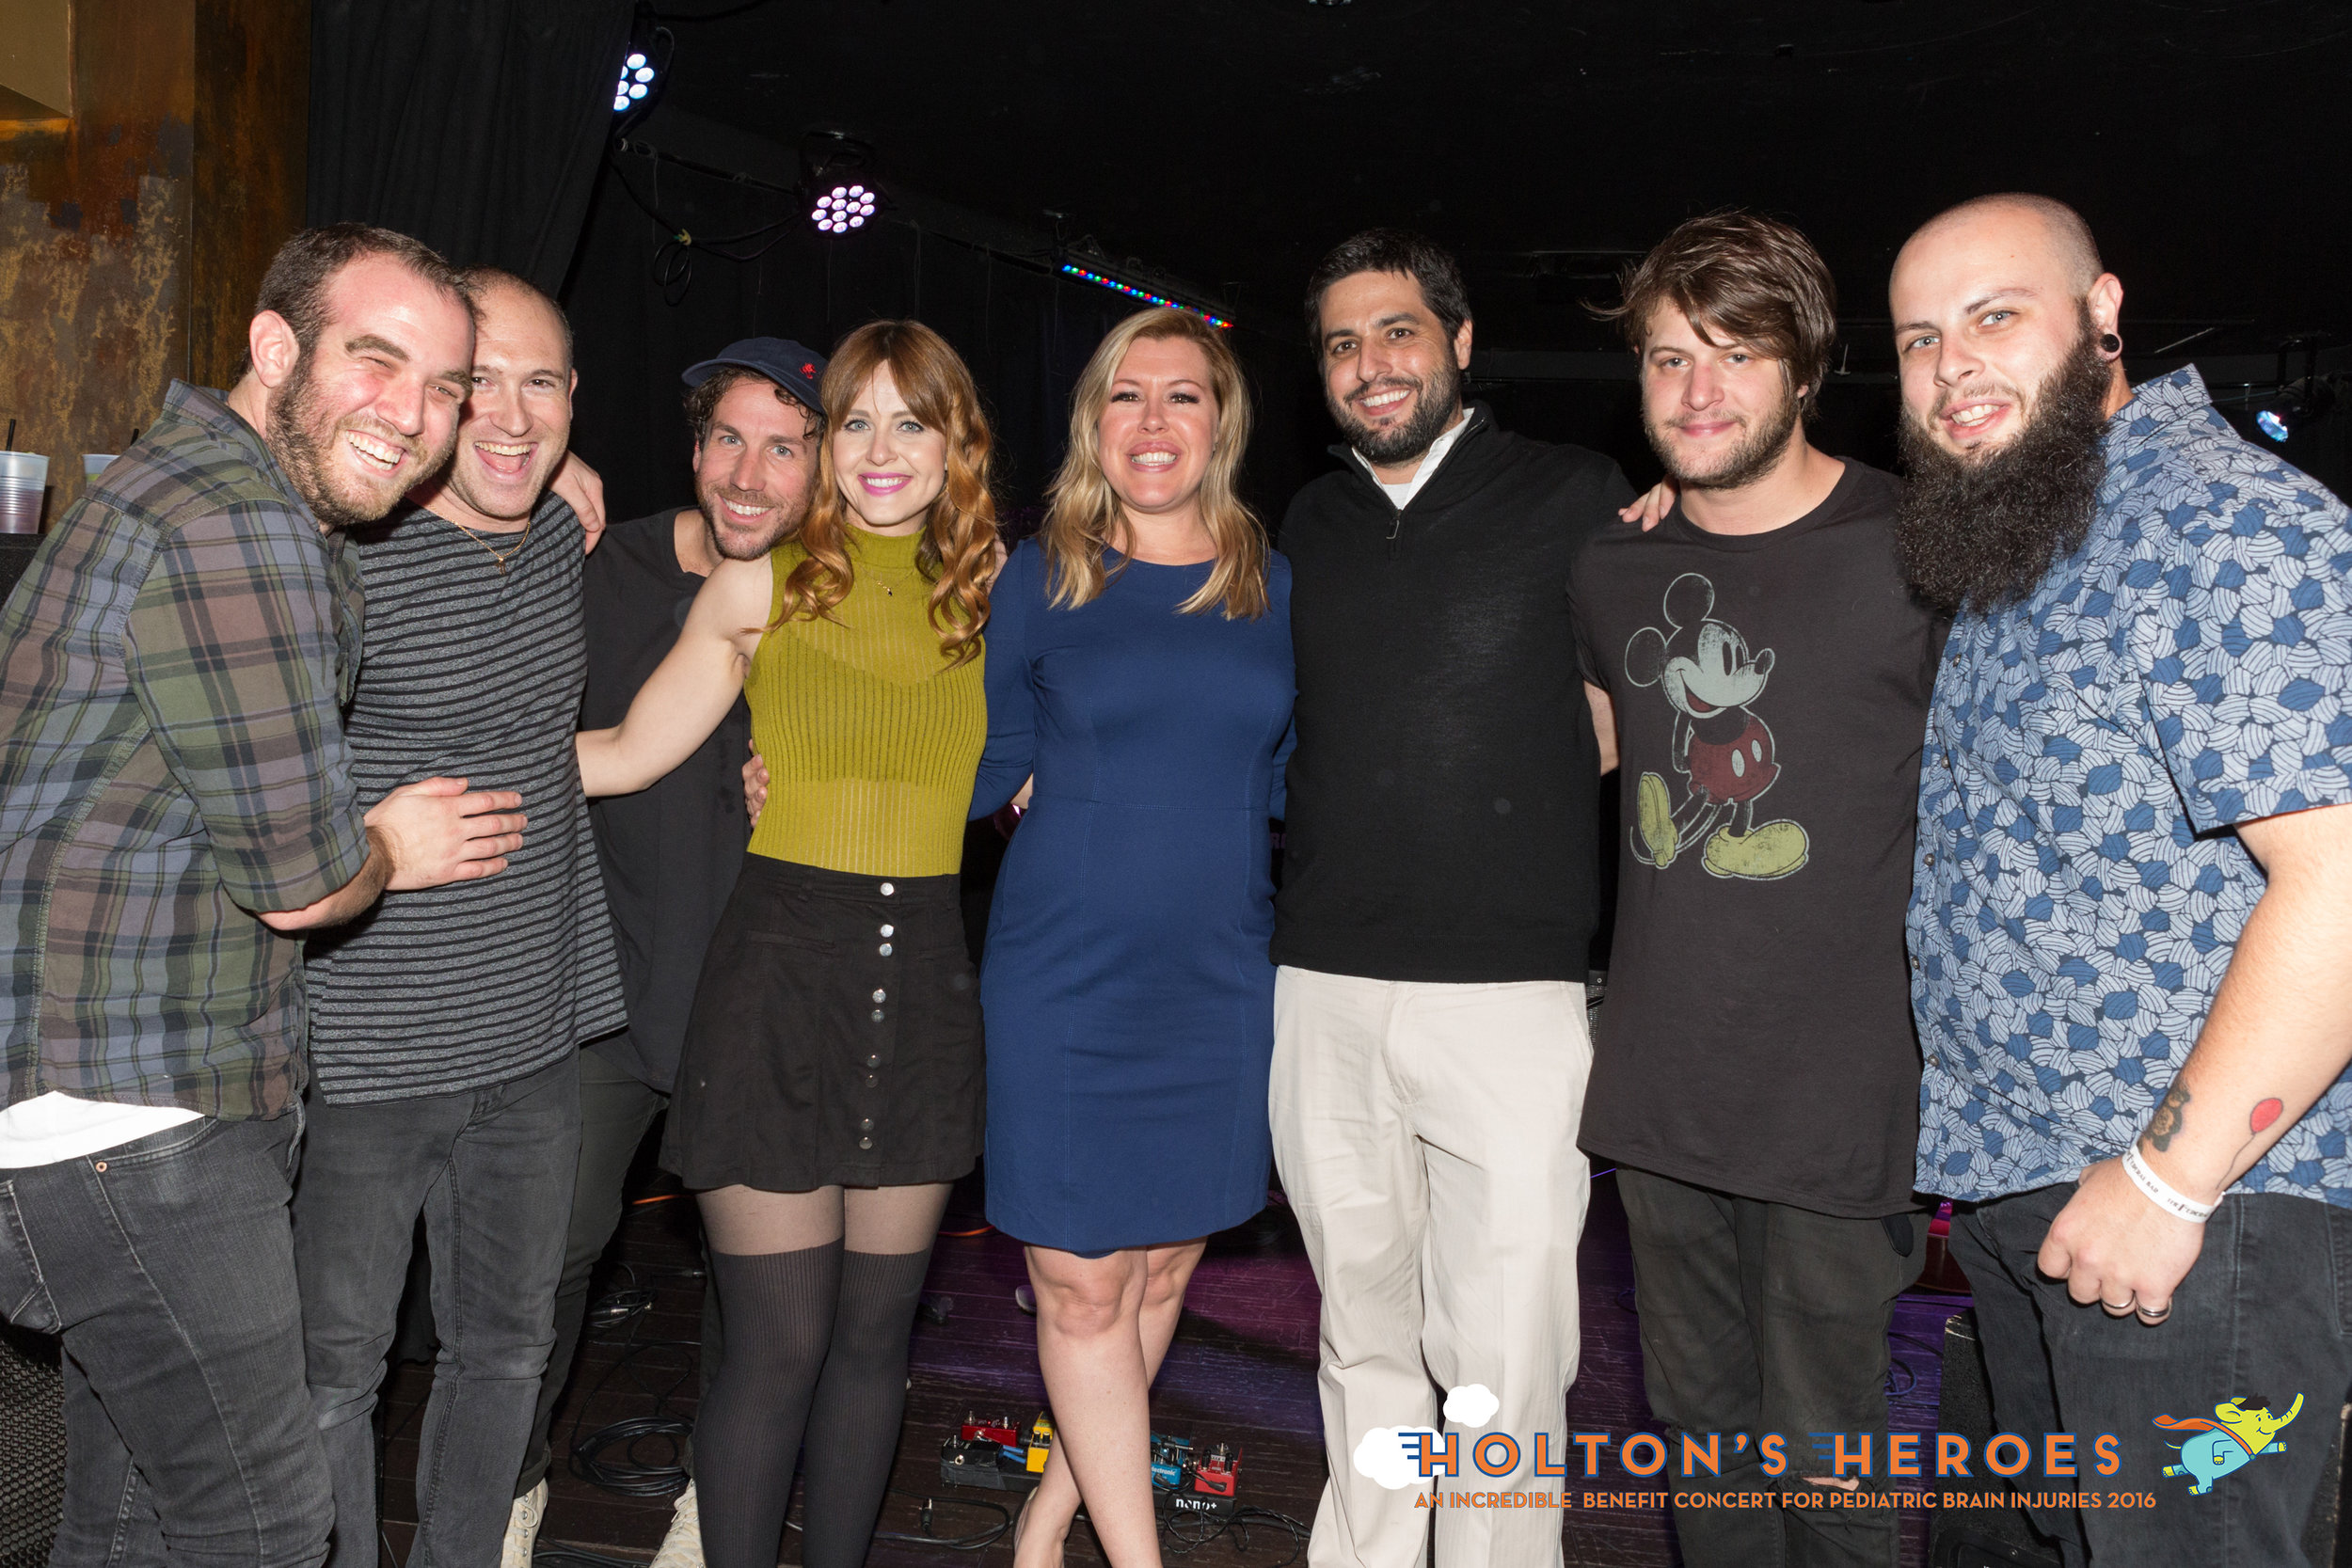 Angela and Eric (middile) post with the Mowgli's.   Photo by Chyna Photography